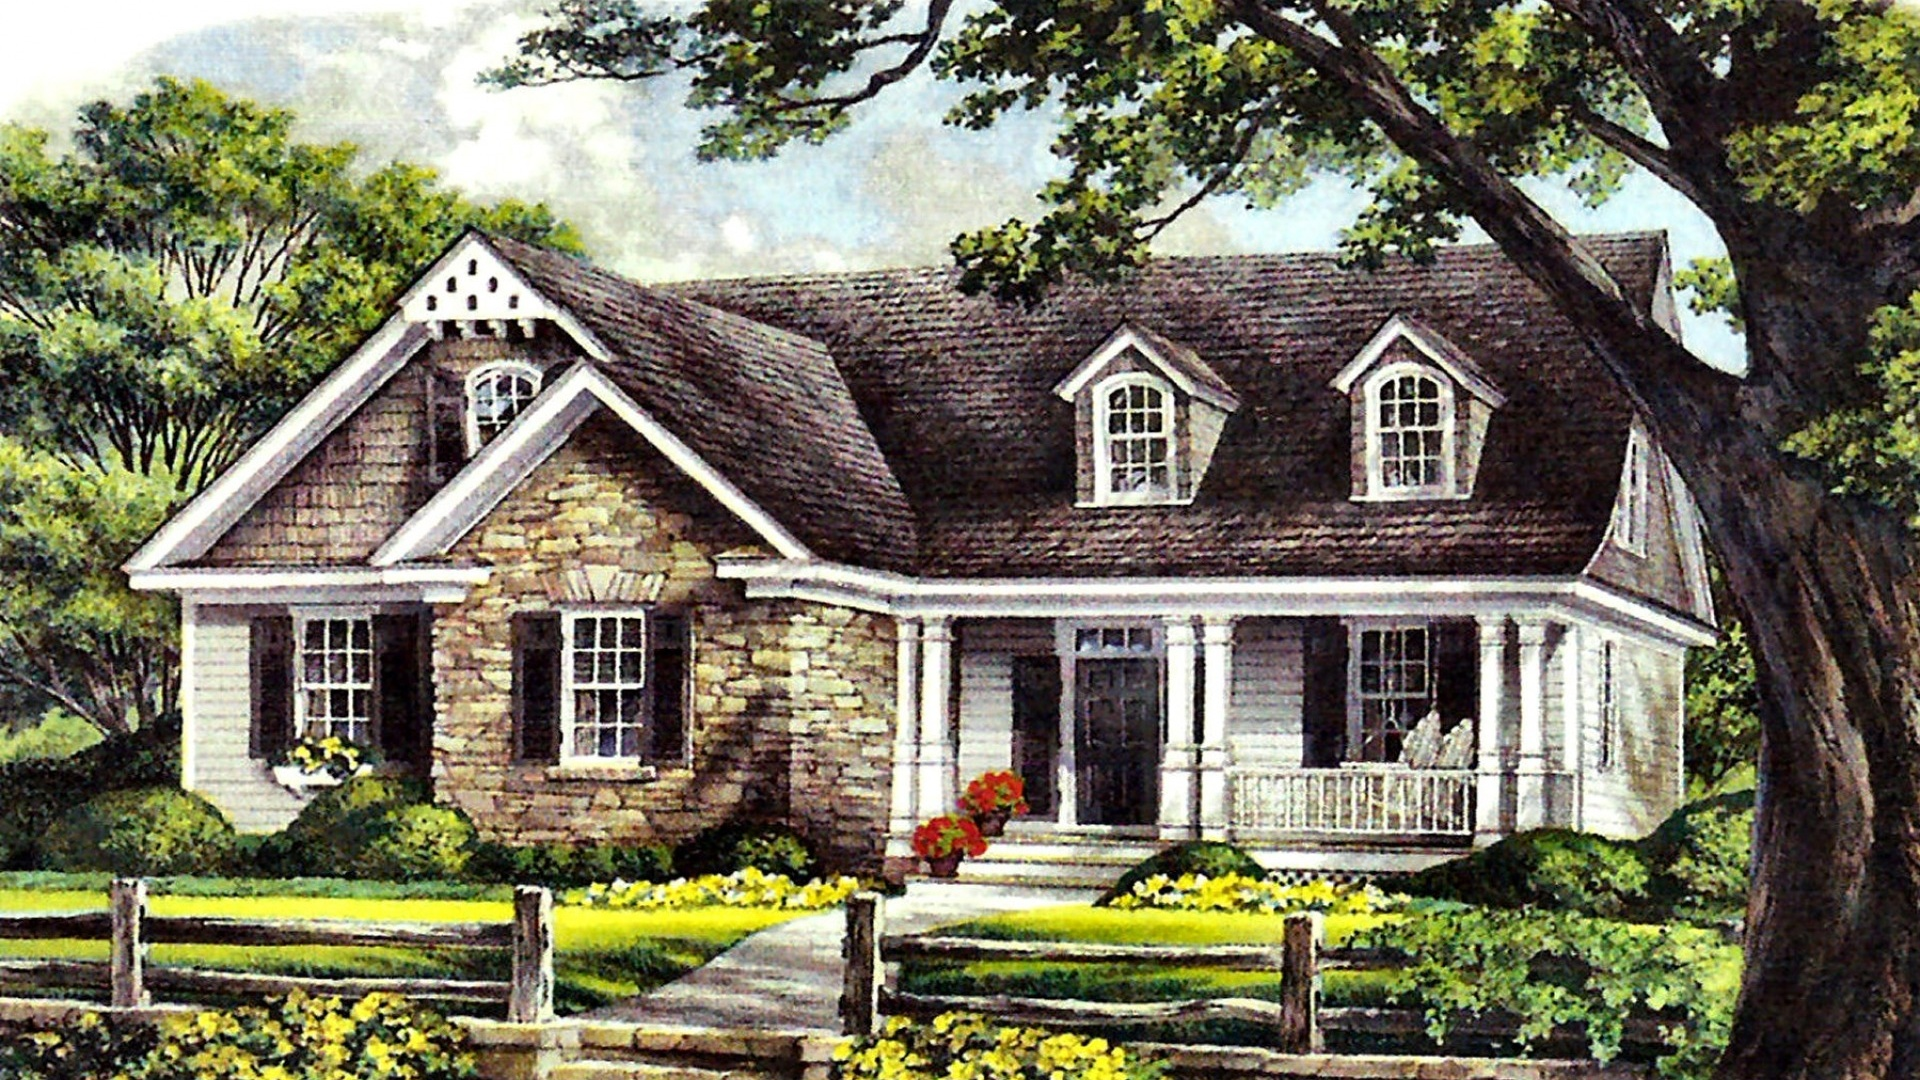 1920x1080 one story cottage desktop pc and mac wallpaper for One story cottage